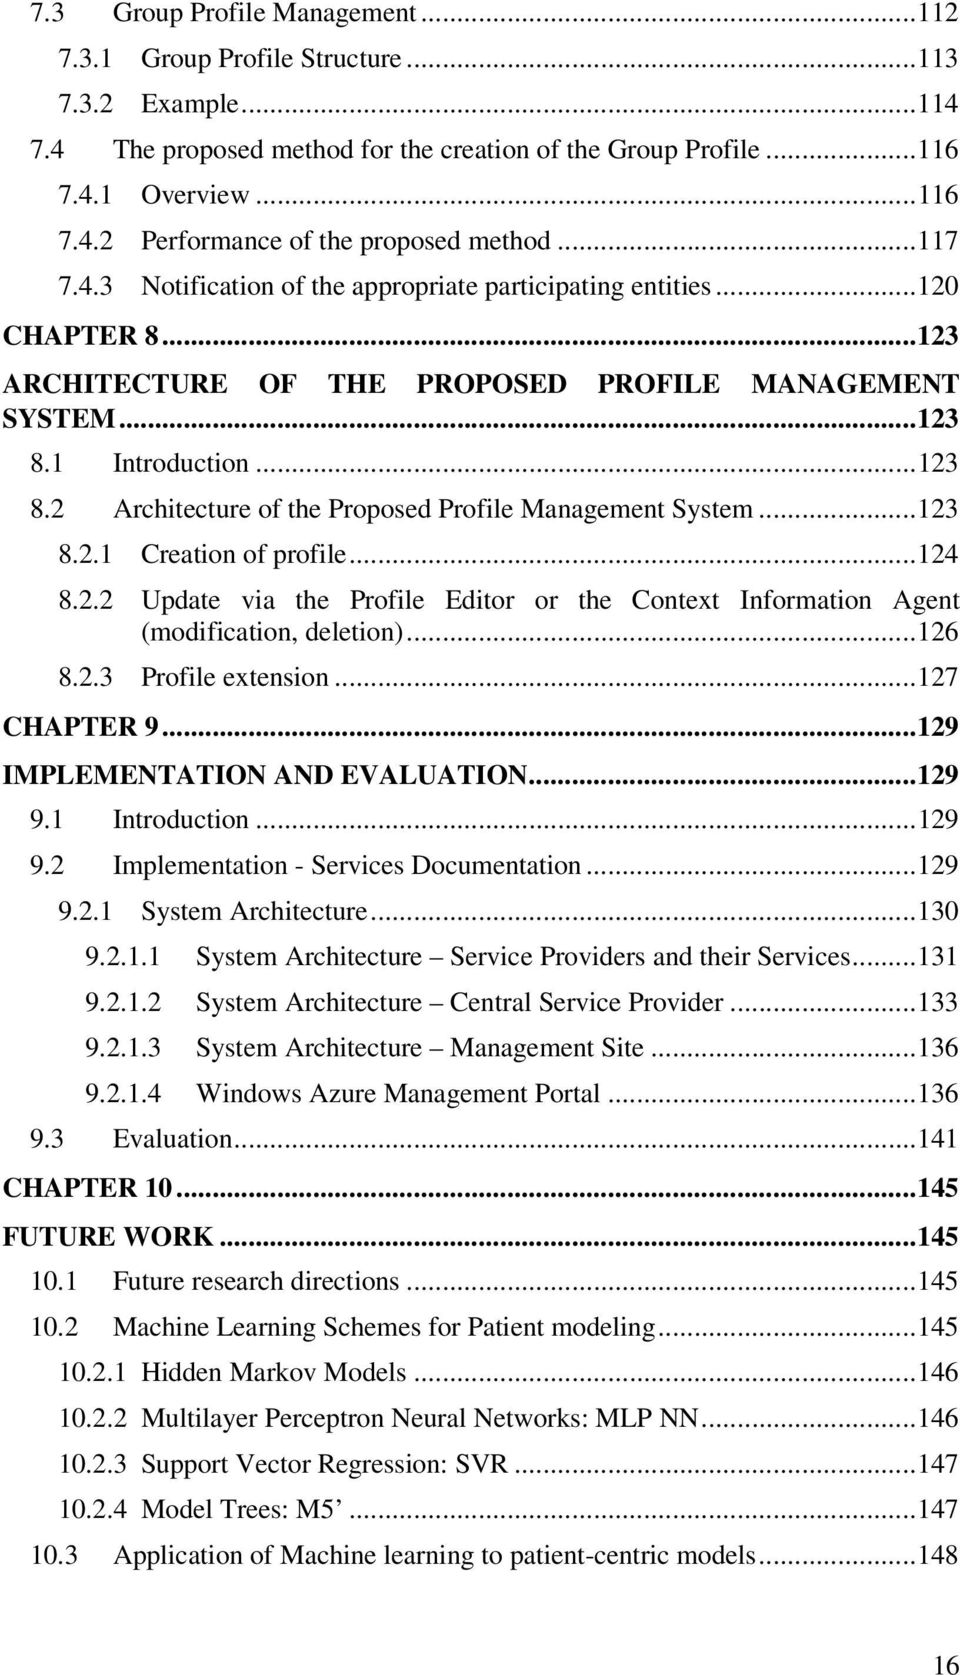 1 Introduction... 123 8.2 Architecture of the Proposed Profile Management System... 123 8.2.1 Creation of profile... 124 8.2.2 Update via the Profile Editor or the Context Information Agent (modification, deletion).